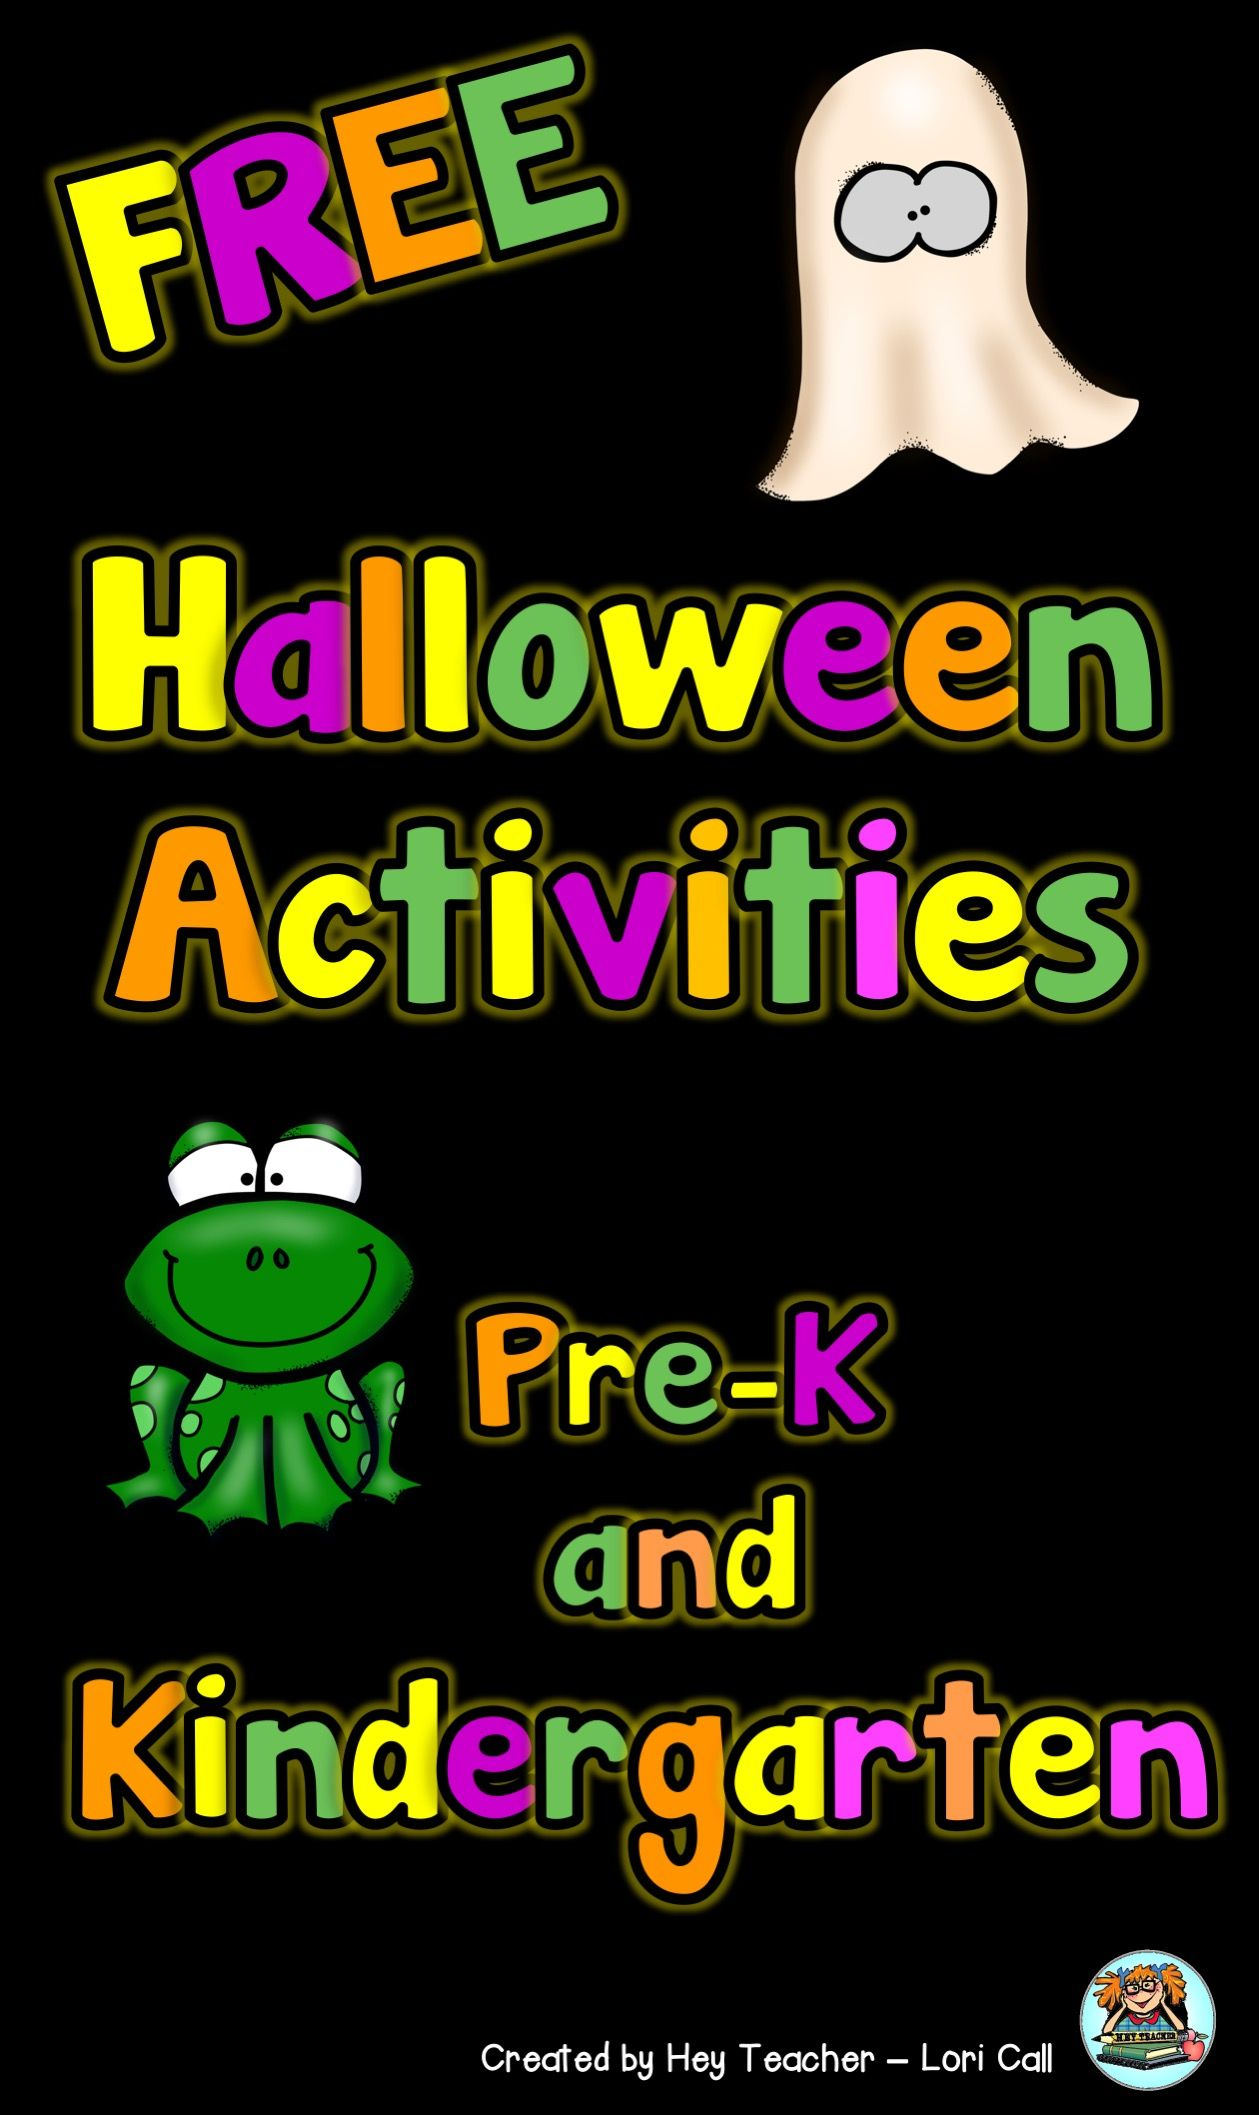 Free Halloween Printable For Pre K And Kindergarten Kids